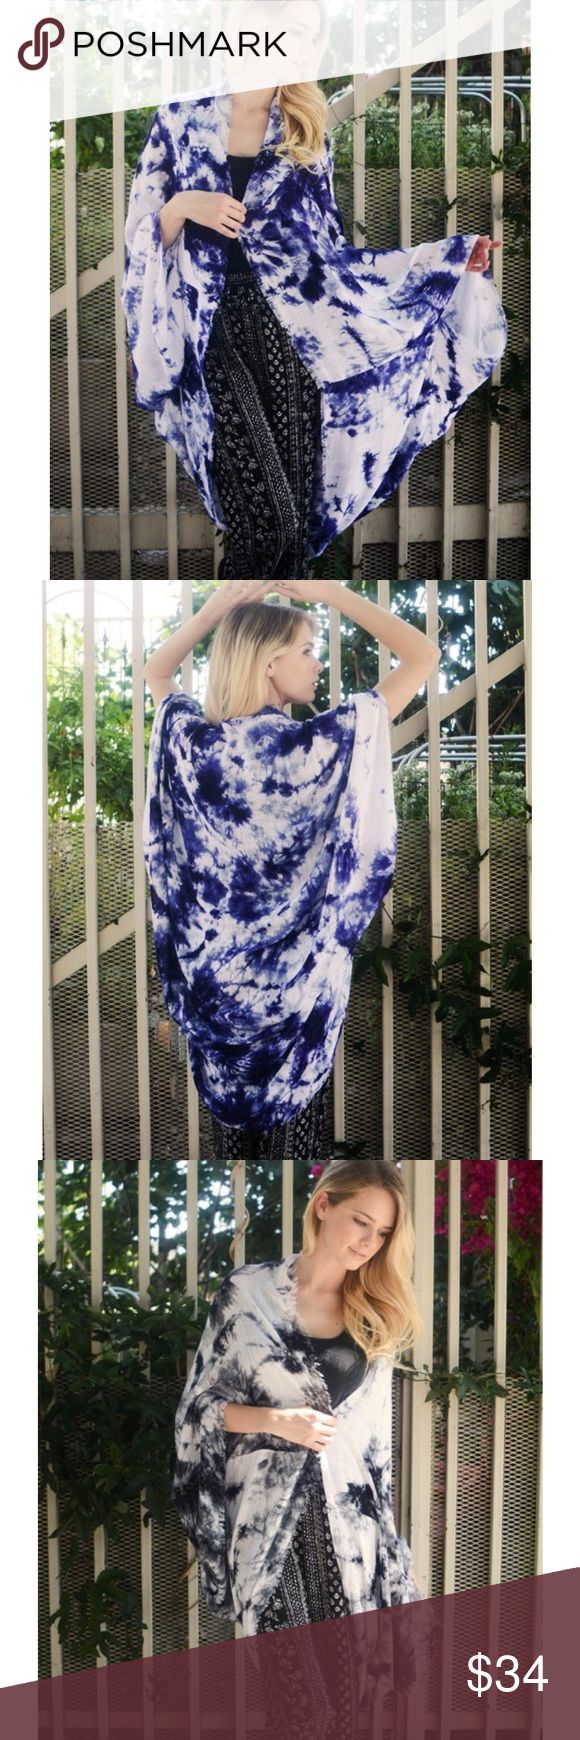 """""""Looking Glass"""" Kimono Scarf Cardigan Cocoon kimono scarf cardigan. One size fits most. Available in black and blue. This listing is for the BLUE. Brand new Bare Anthology Jackets & Coats"""